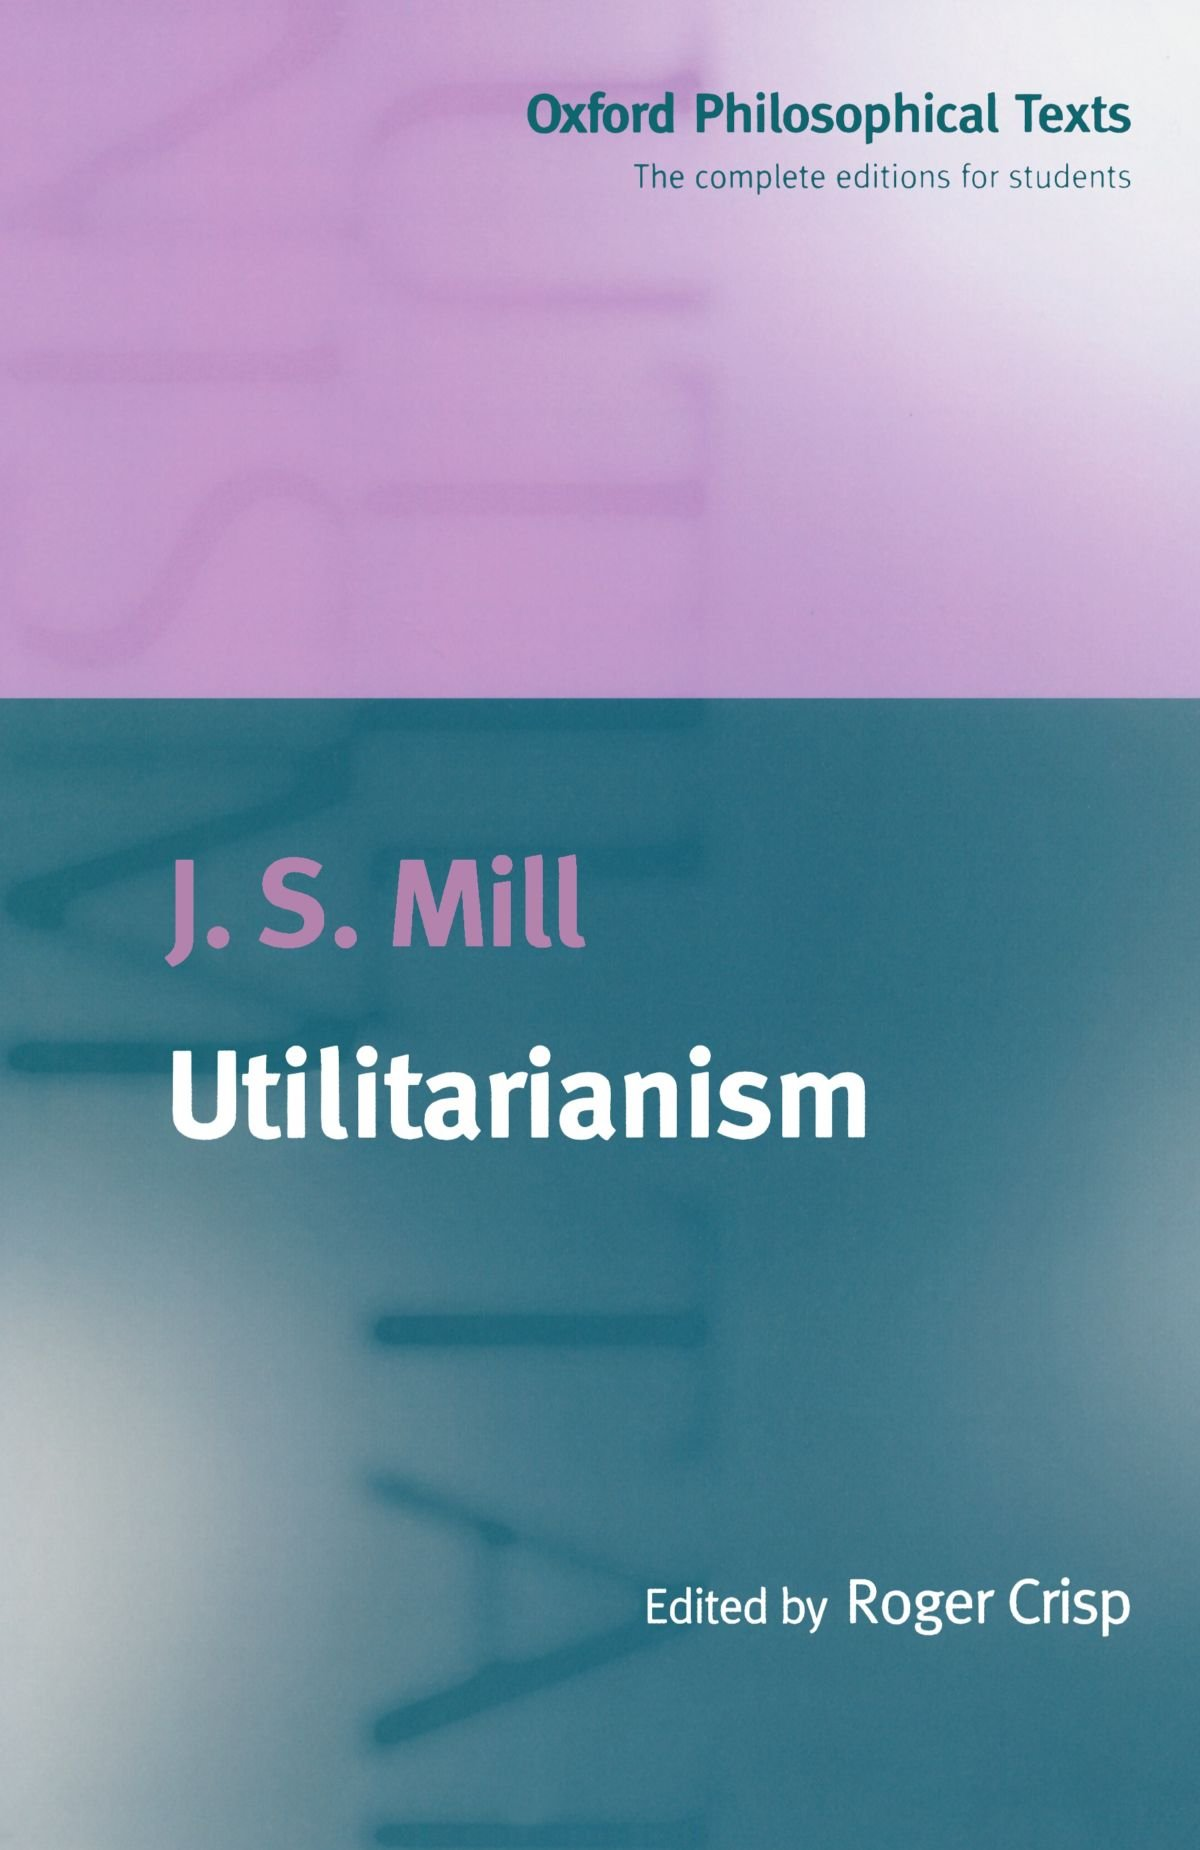 utilitarianism oxford philosophical texts amazon co uk j s utilitarianism oxford philosophical texts amazon co uk j s mill 9780198751632 books